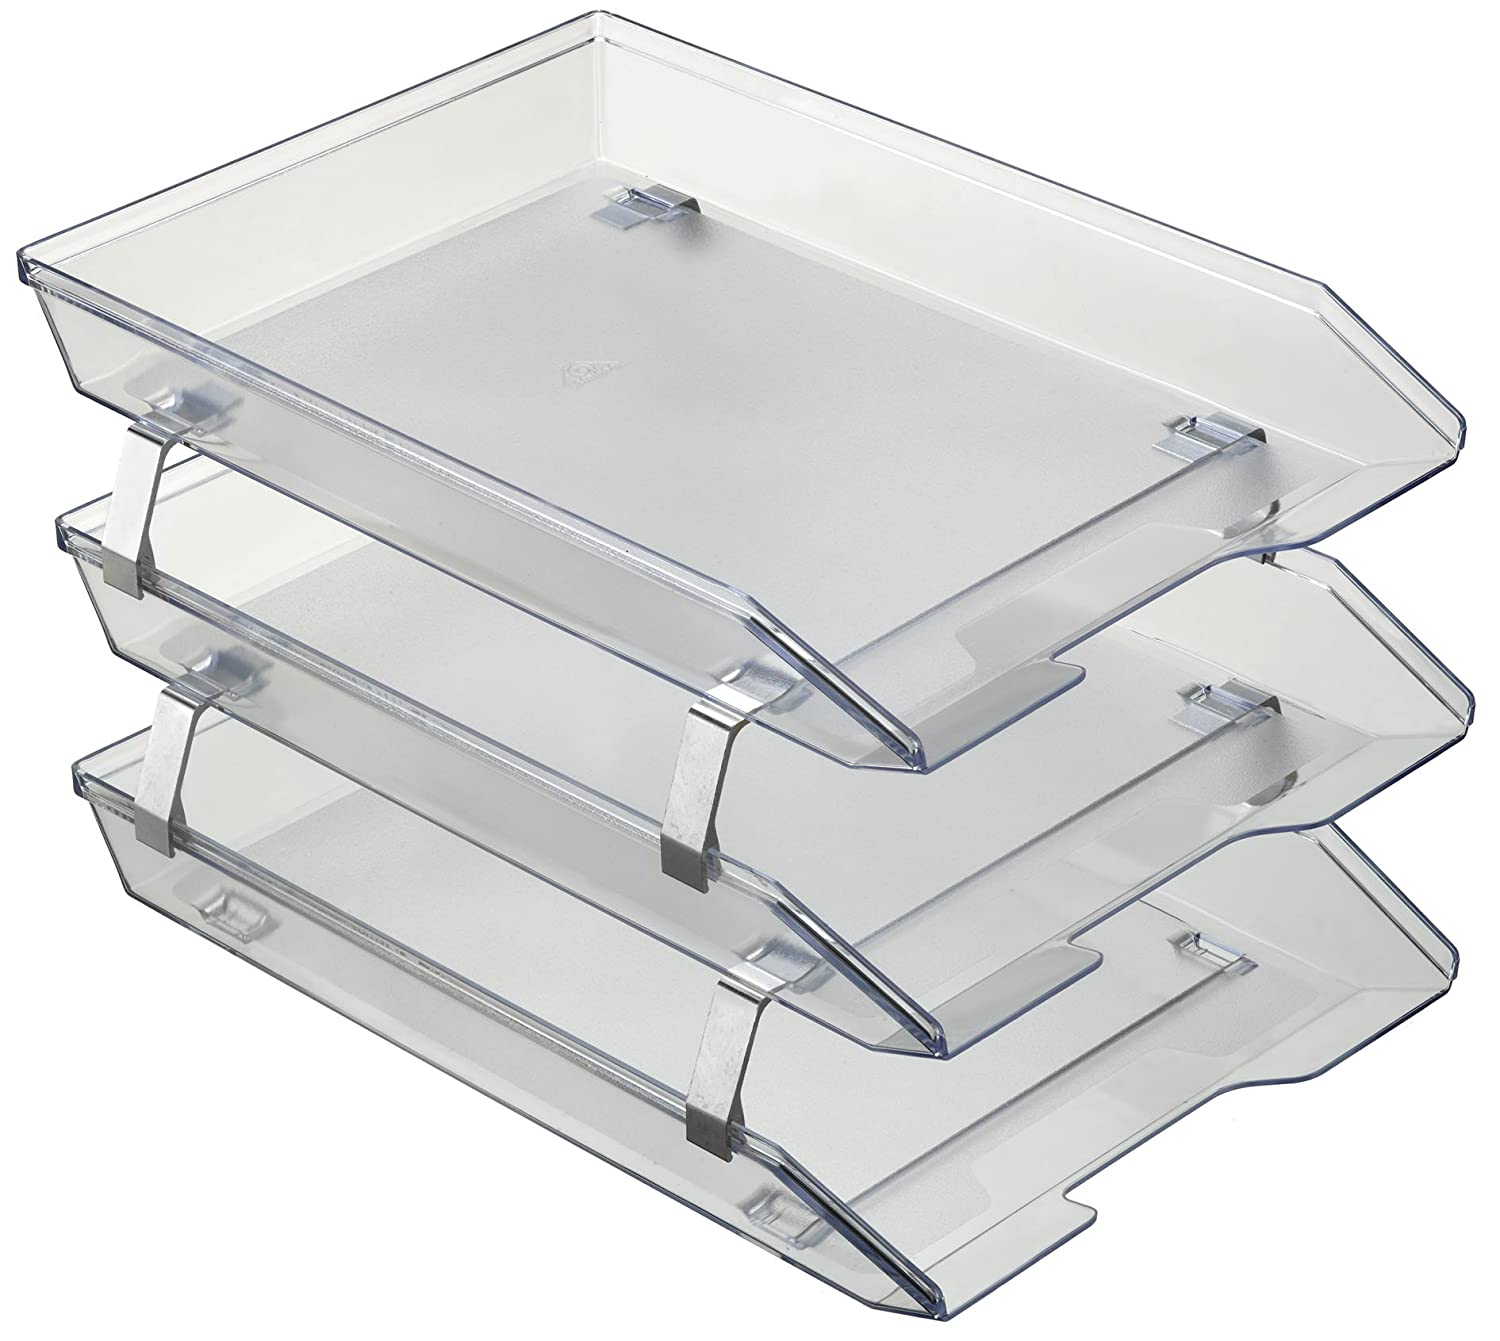 Acrimet Facility 3 Tiers Triple Letter Tray Frontal A4 (Crystal Color) 265.3